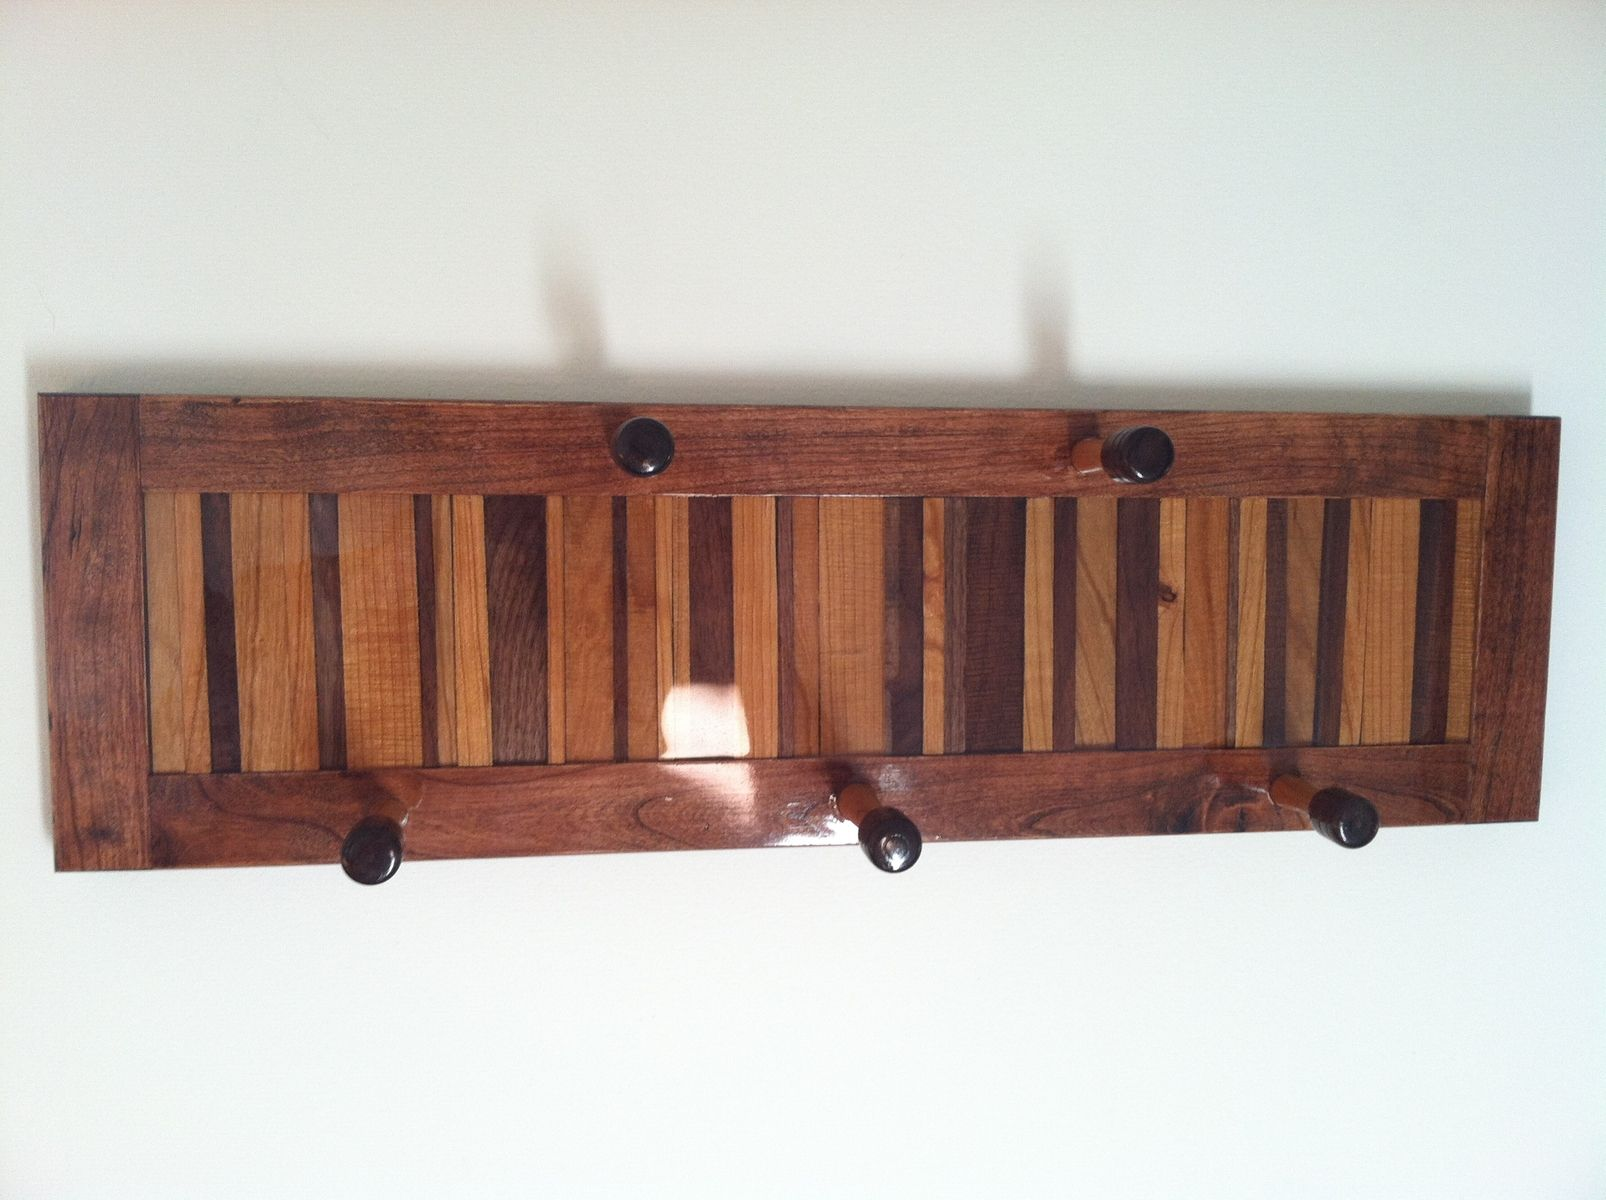 Awesome Design Of The Wall Mount Coat Rack With Brown Oak Wooden Color  Materials Added With